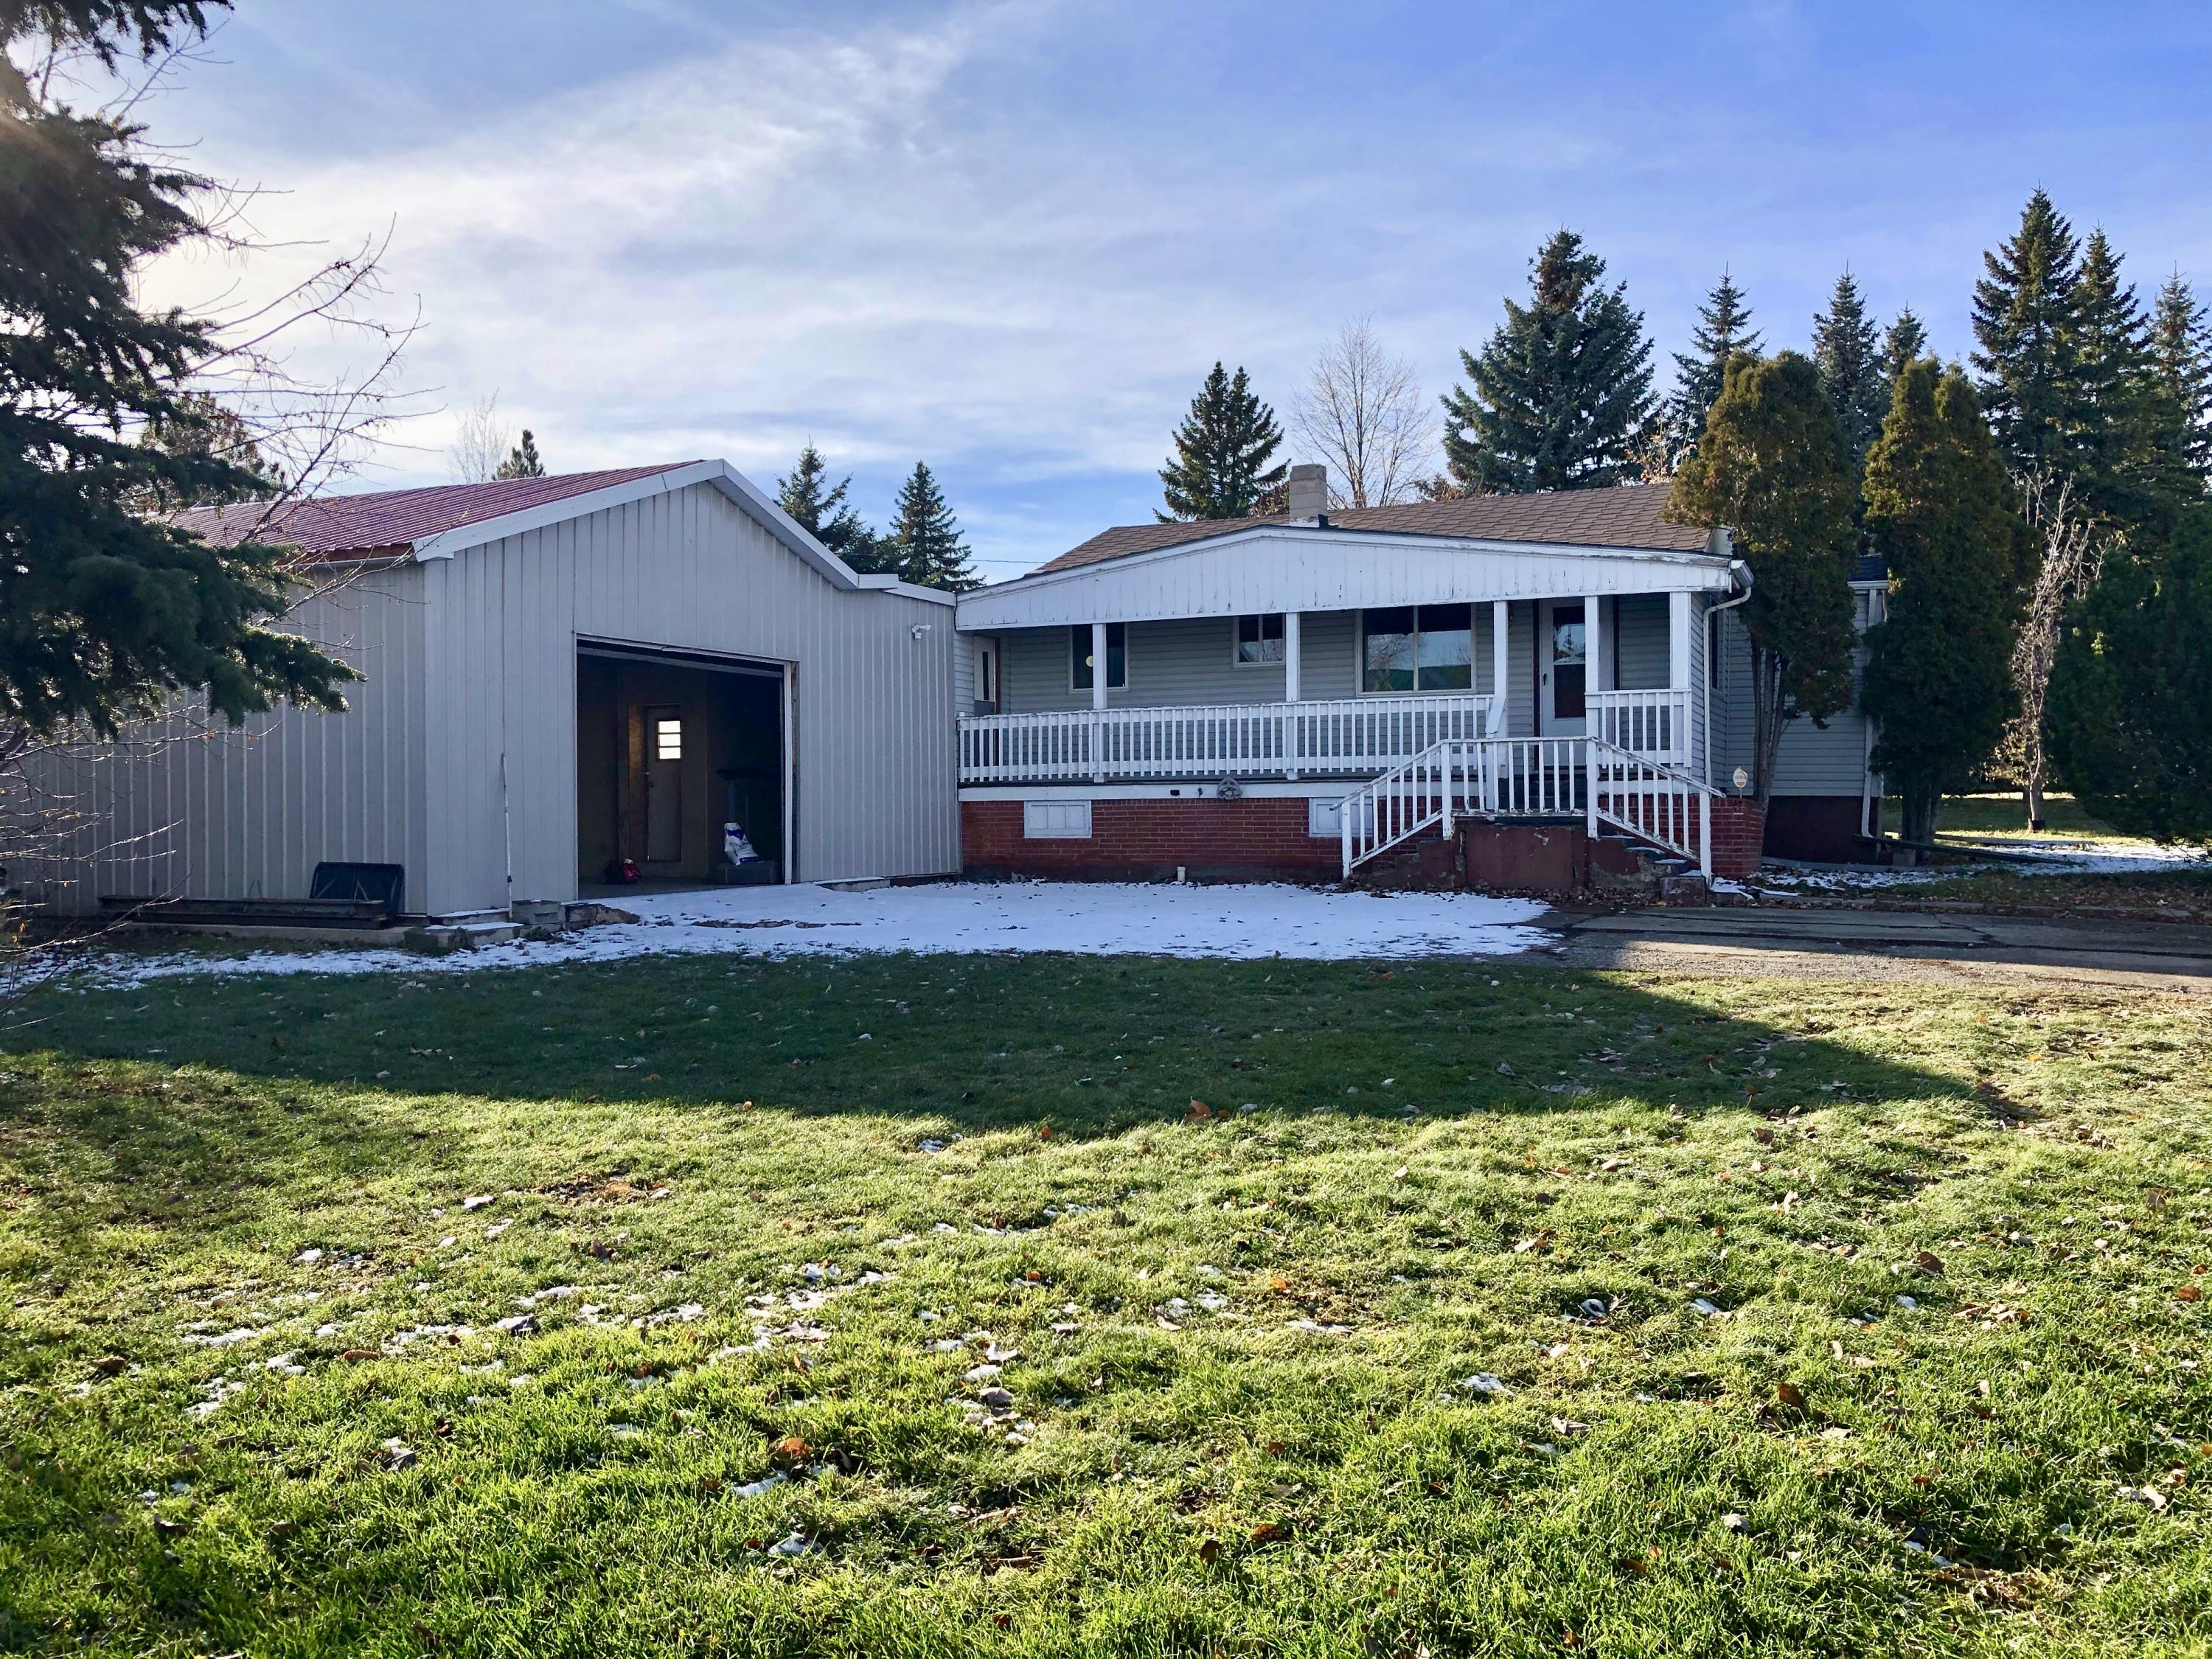 LOOKING FOR A SHOP?  42' X 24'  Shop with Concrete Floor (with Drain), 220V, Workbenches, Shelving, Insulated, Oversized Garage Door with GDO.  Wood Stove Heat.  Close to Market Place AND it Comes with a 3 Bedroom, 2 Bath Home.   Please View the Virtual Tour.  Call Jean Clary 406.868.3961 or Your Real Estate Professional.